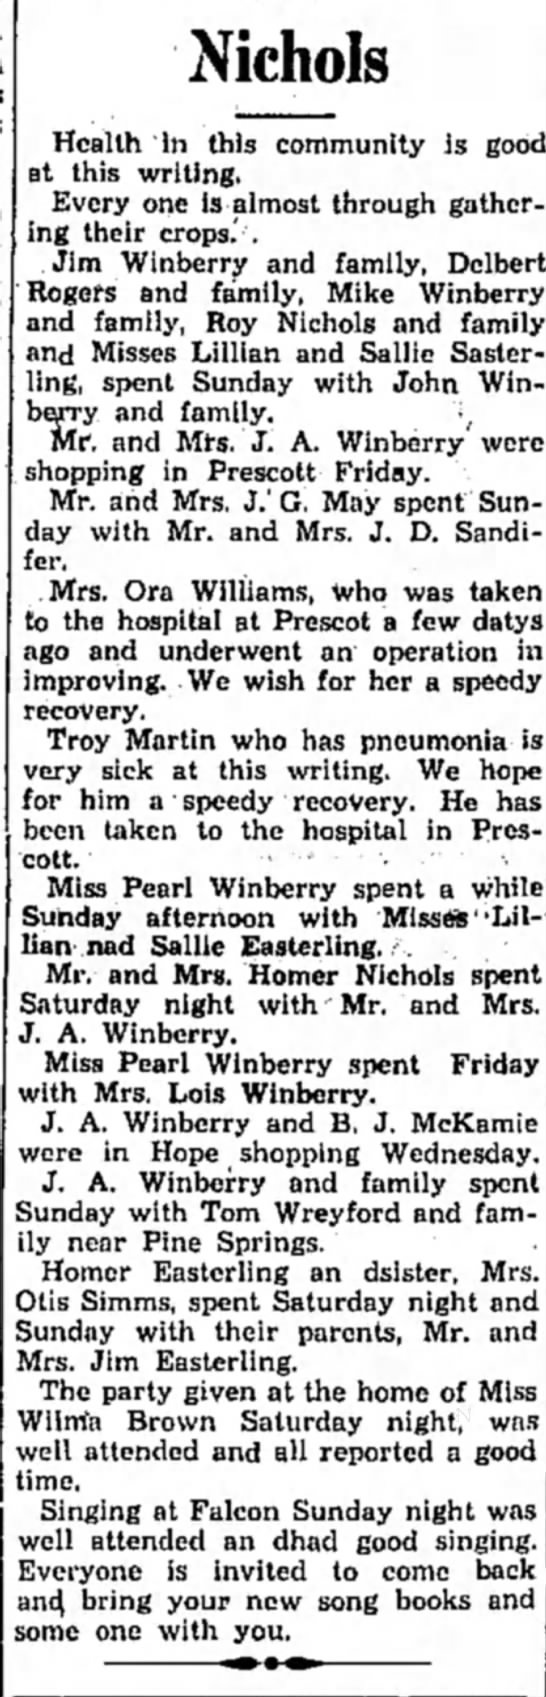 Winberry HS 12 Nov 1931 p3  - Nichols Health 'In this communily is good at...